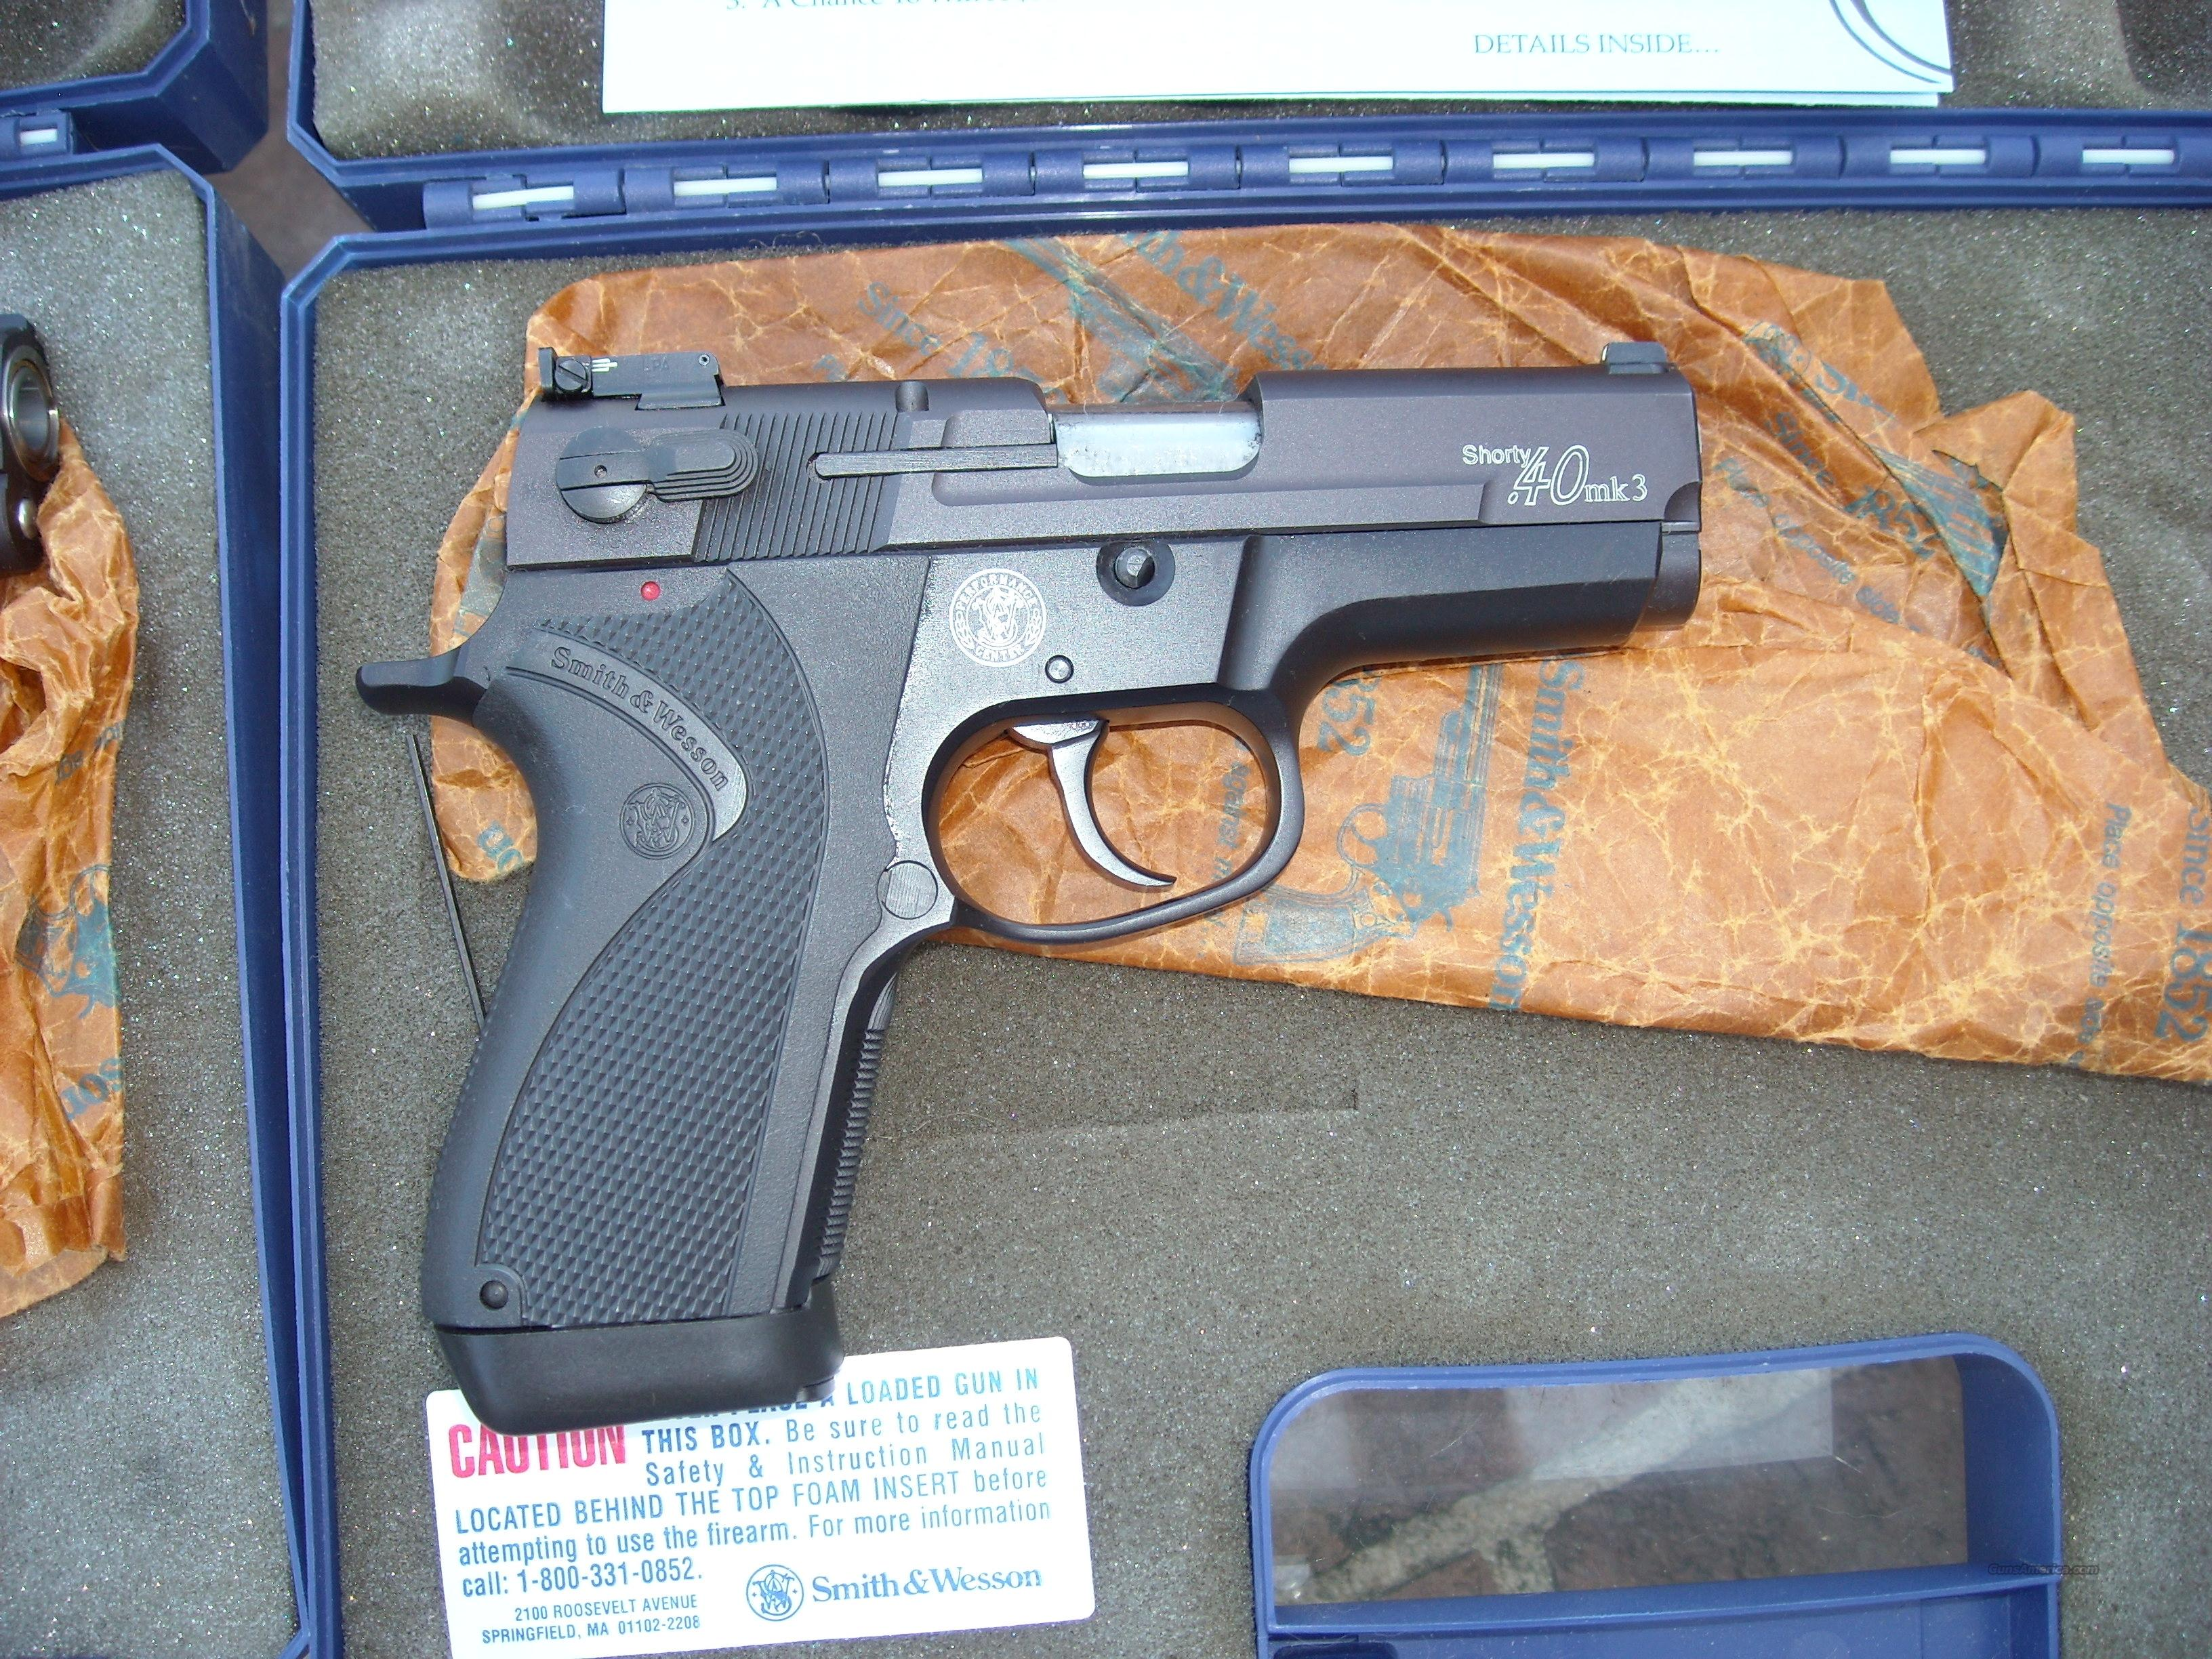 Smith & Wesson Shorty.40 Mark 3  Guns > Pistols > Smith & Wesson Pistols - Autos > Alloy Frame